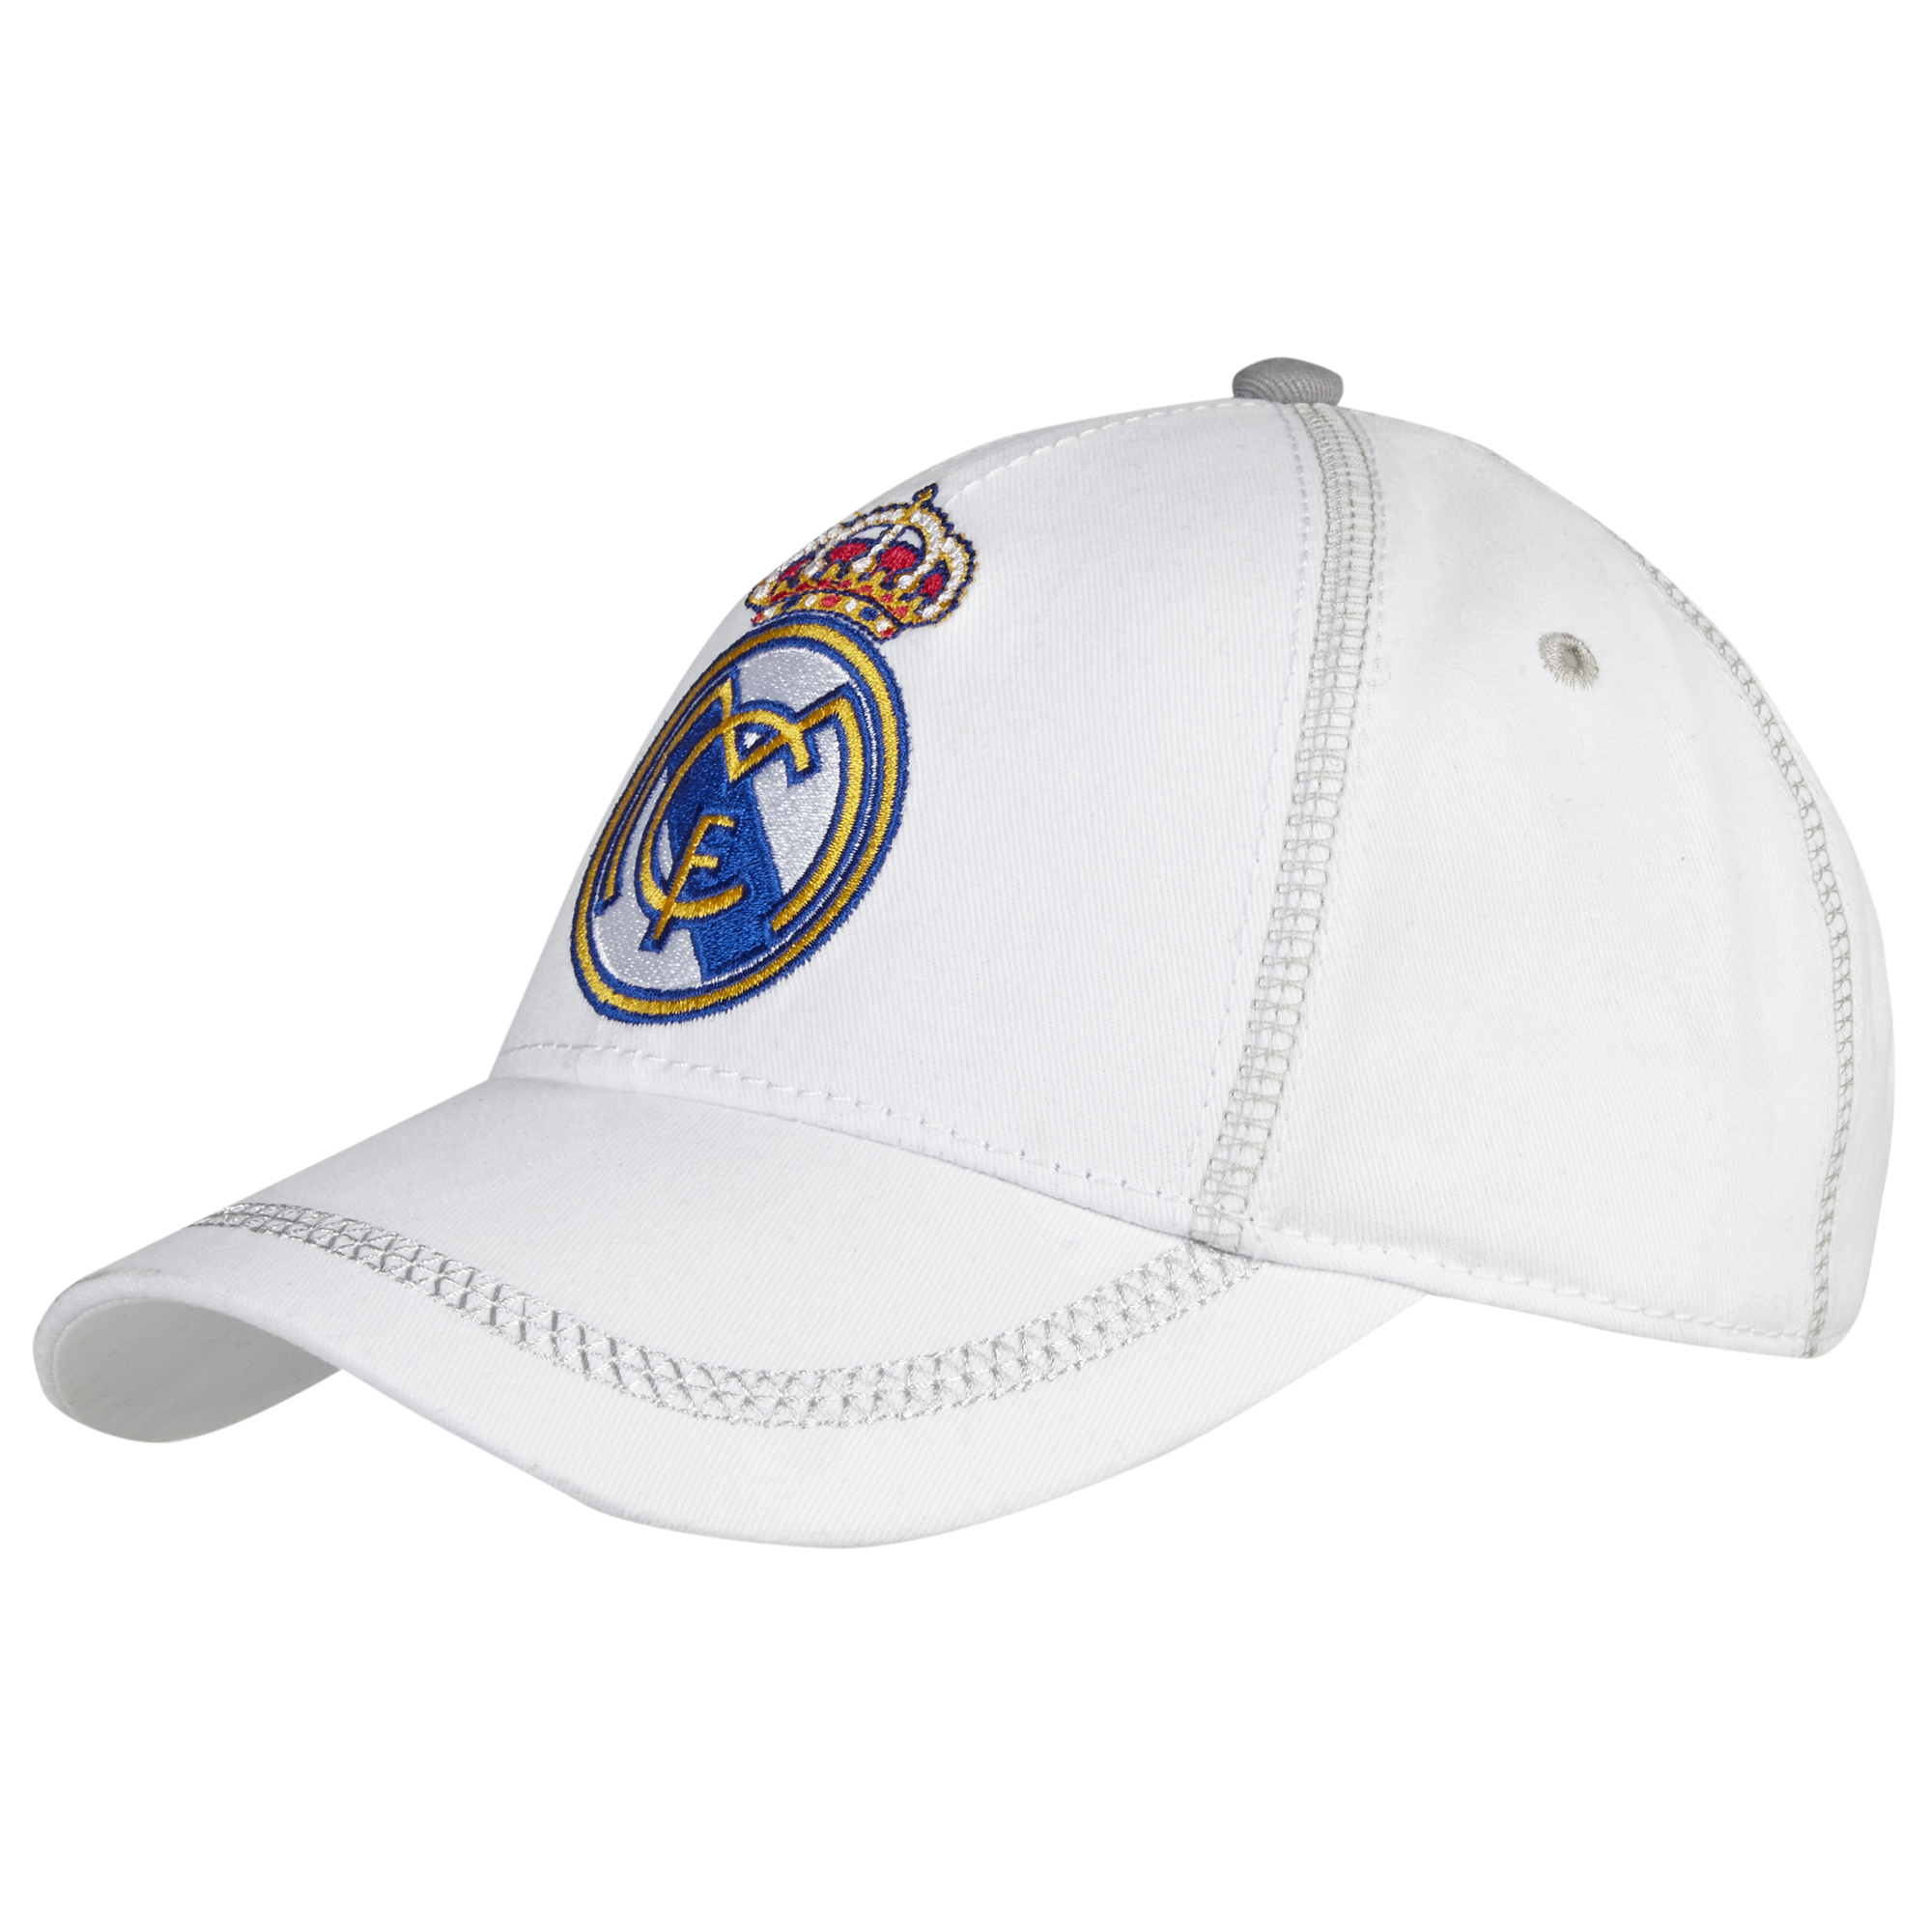 Casquette de fan Real Madrid - Blanc - Enfant